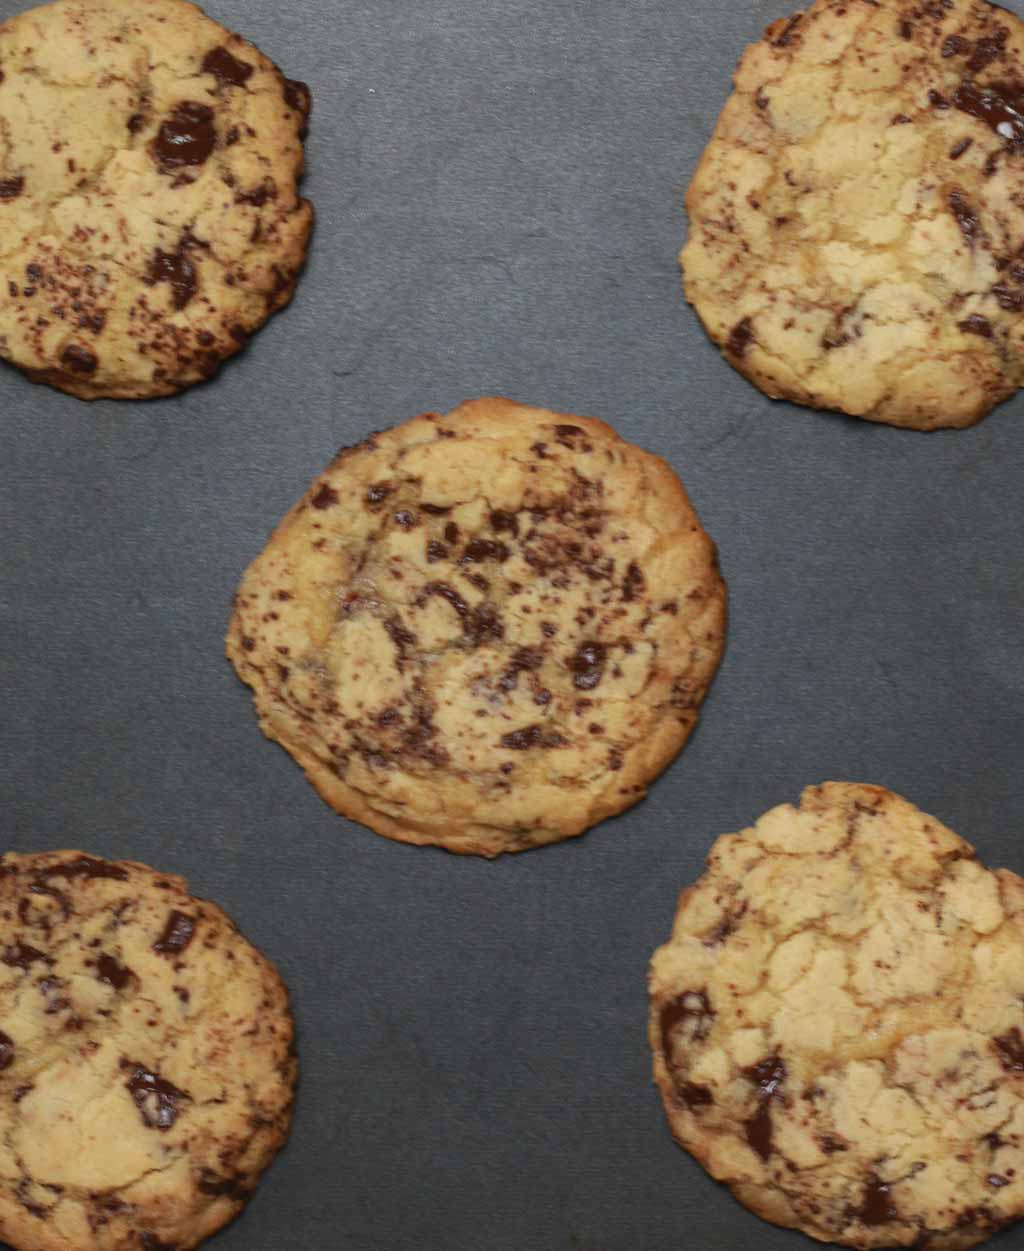 Baked Cookies On A Black Tray